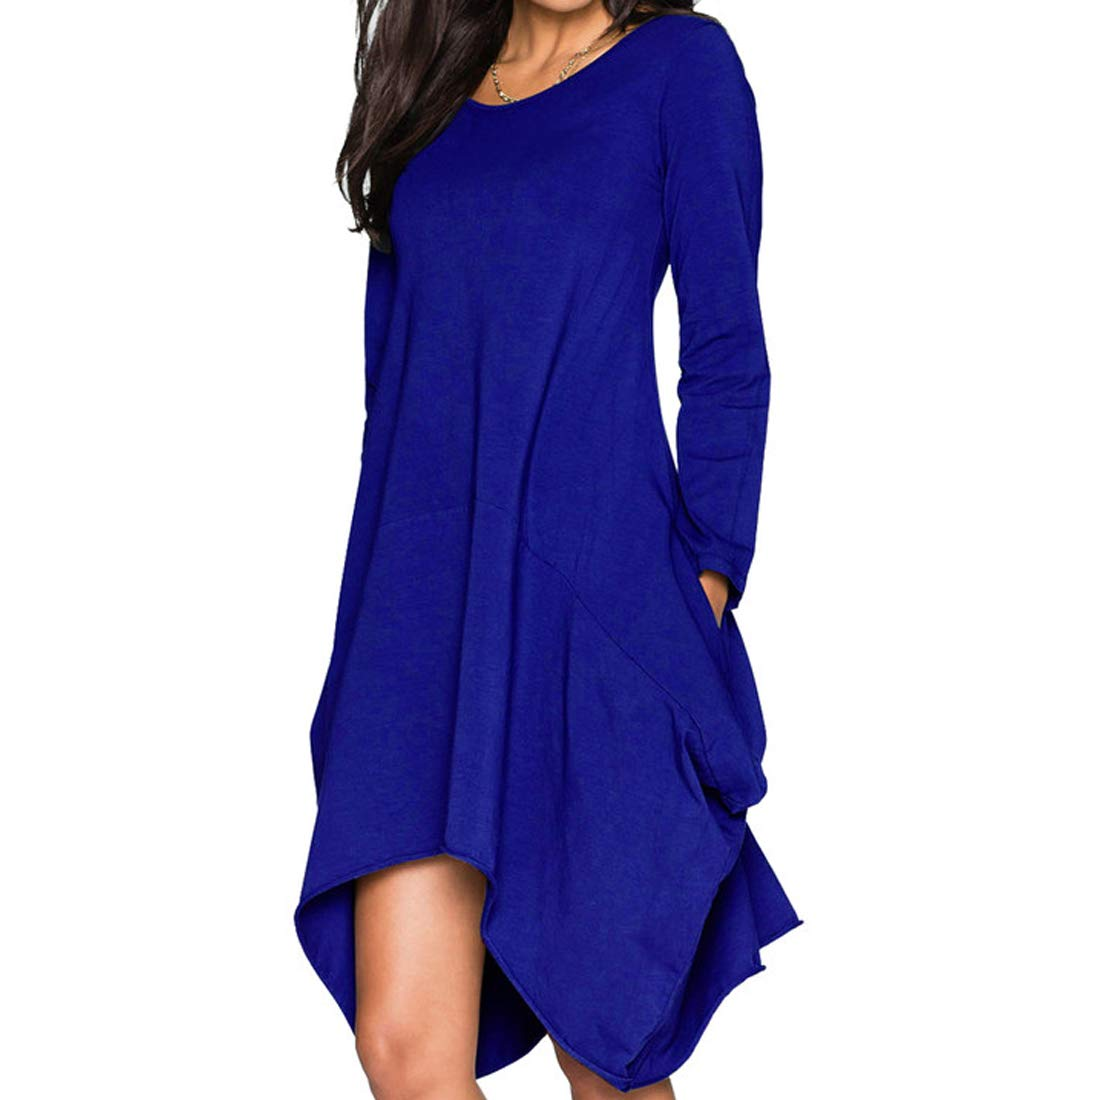 Women's Long Sleeve 2 Pockets Plain Midi Dress Loose Swing Casual Maternity Outfit RoyalBlue L